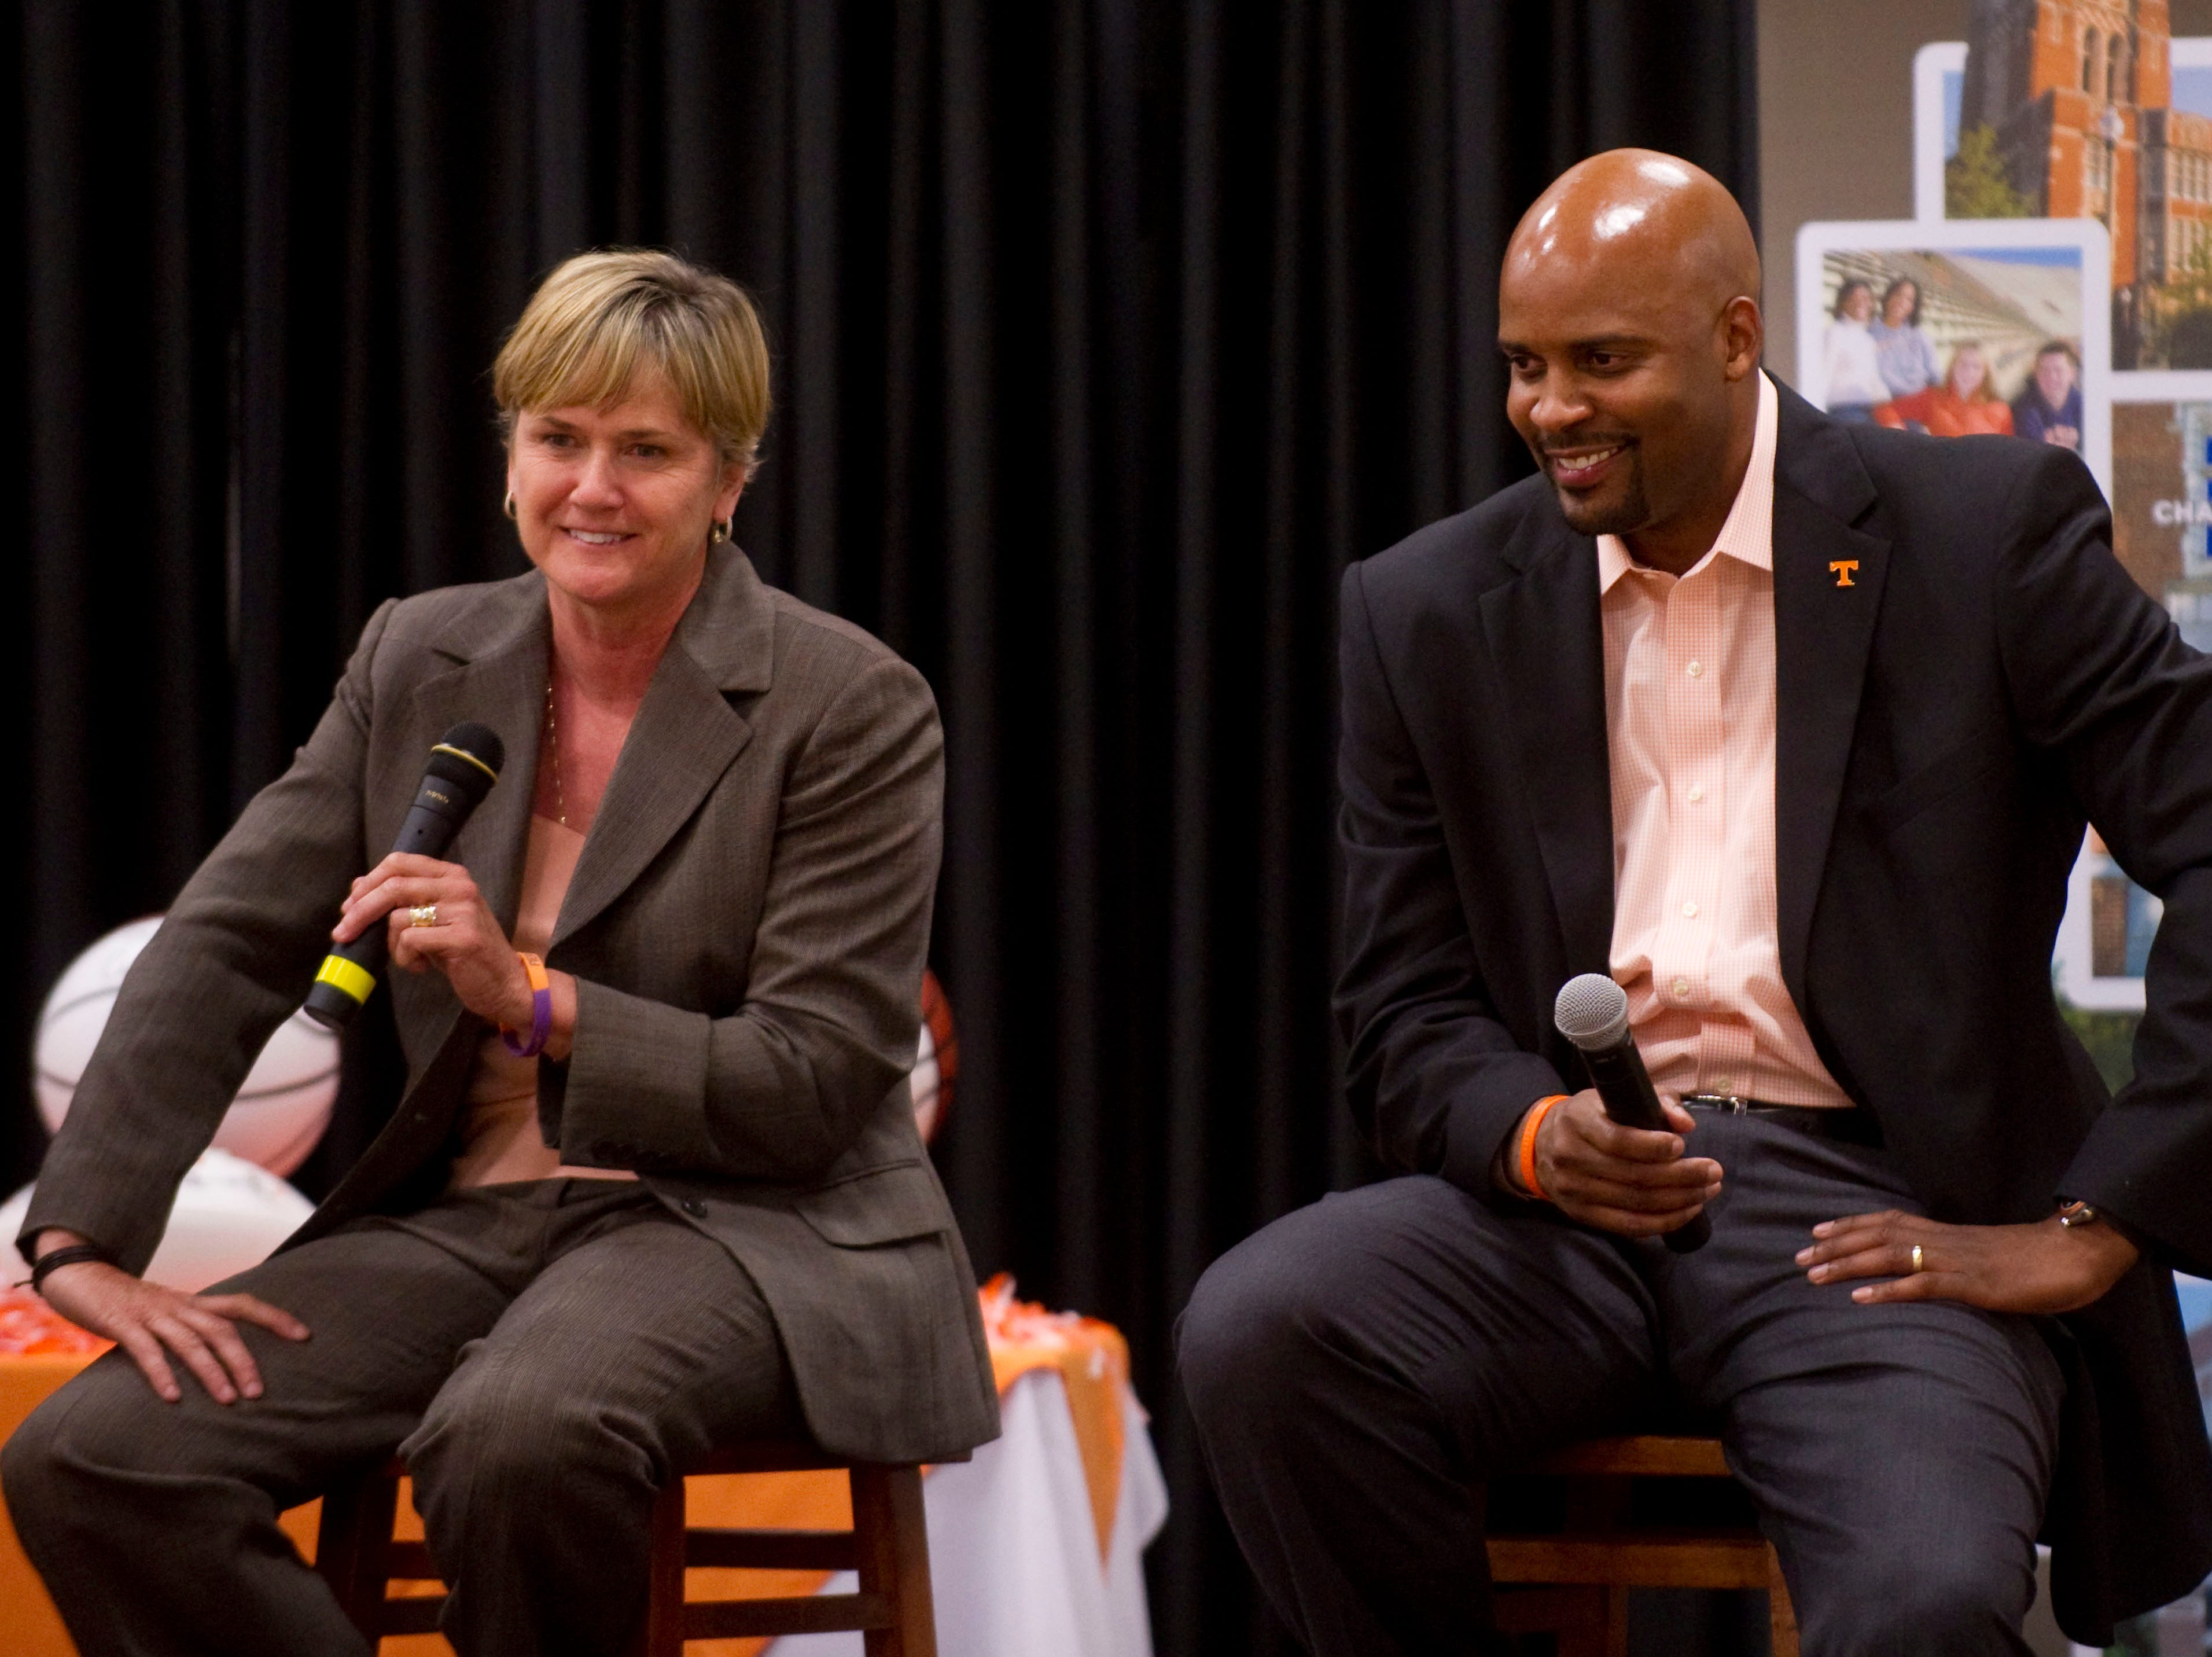 University of Tennessee head basketball coaches Holly Warlick, left, and Cuonzo Martin talk with guests attending the University of Tennessee's Alumni Association's Big Orange Caravan at Maryville College's Alumni Gym on Monday, May 7, 2012. The coaches answered questions and talked about the upcoming basketball season.